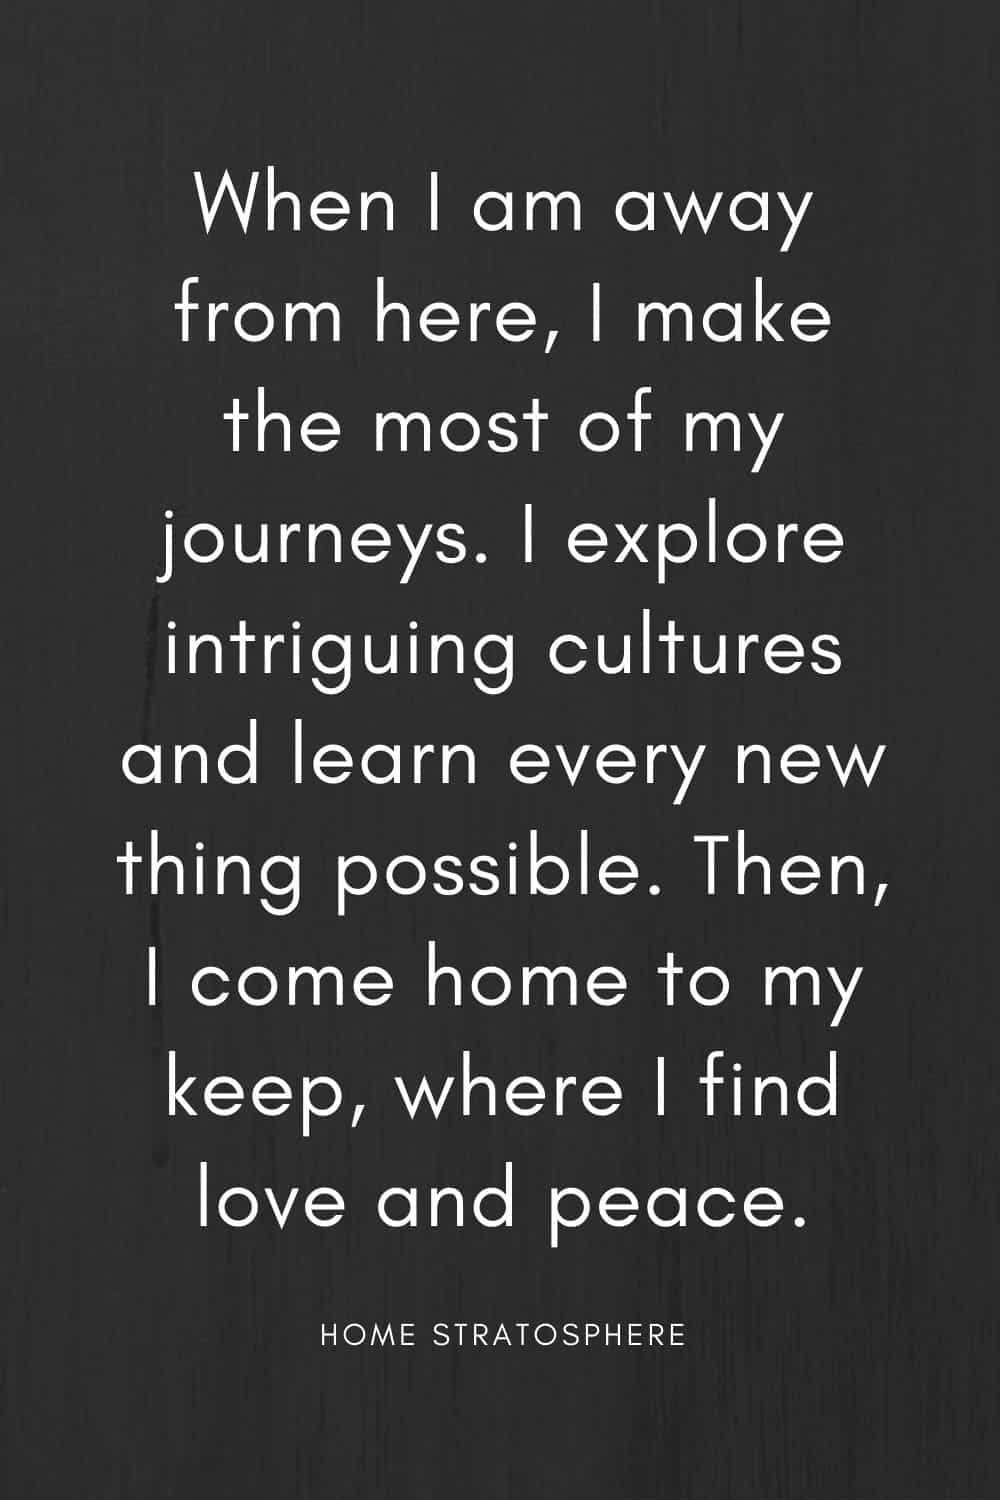 """When I am away from here, I make the most of my journeys. I explore intriguing cultures and learn every new thing possible. Then, I come home to my keep, where I find love and peace."""